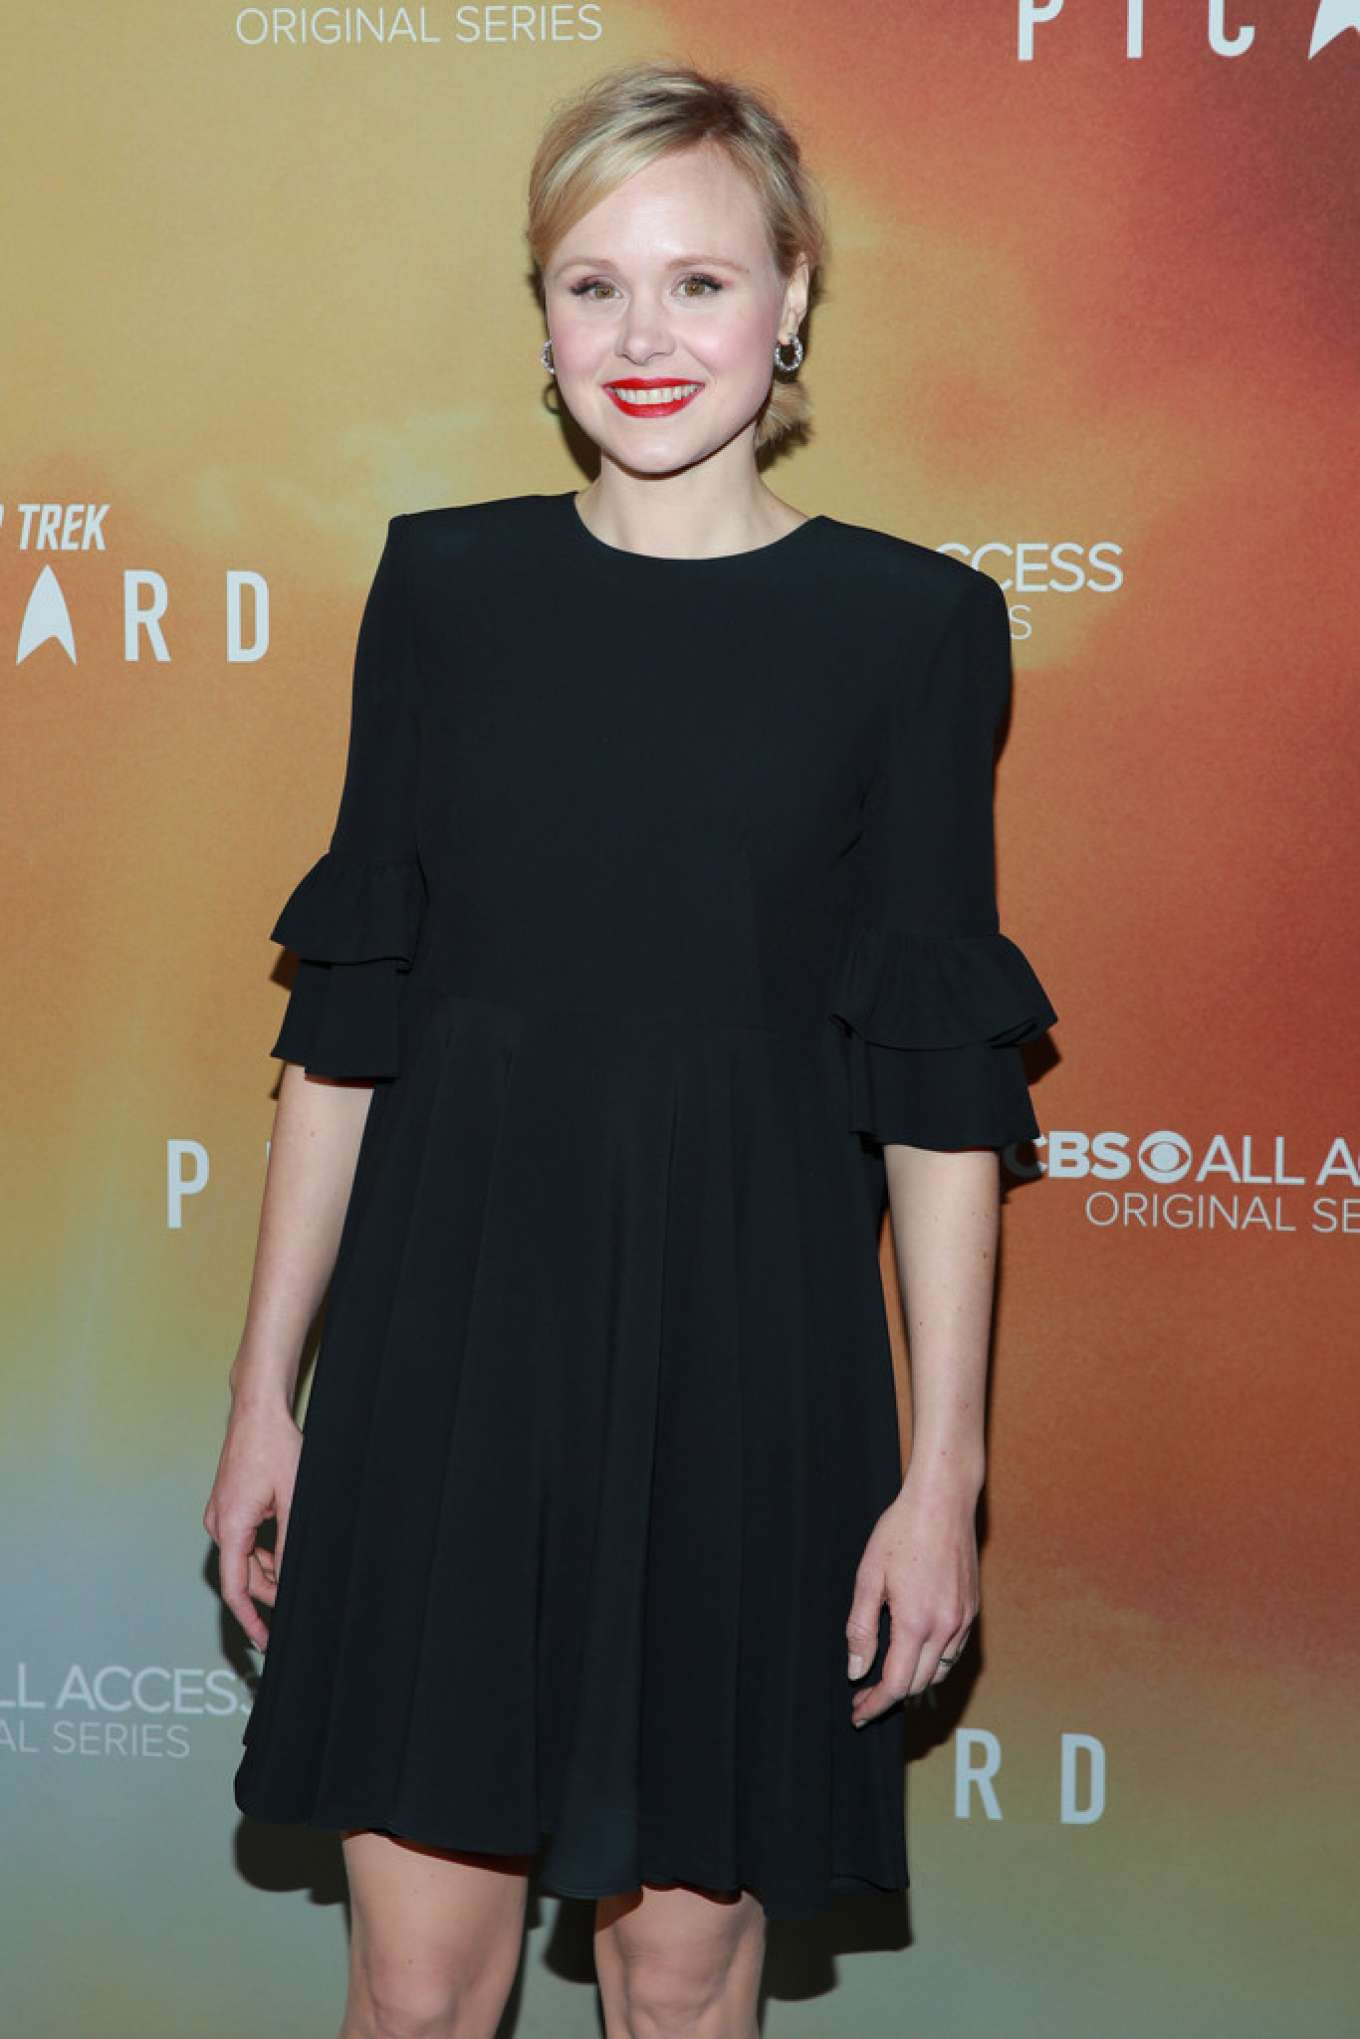 Alison Pill - 'Star Trek: Picard' Premiere in Hollywood